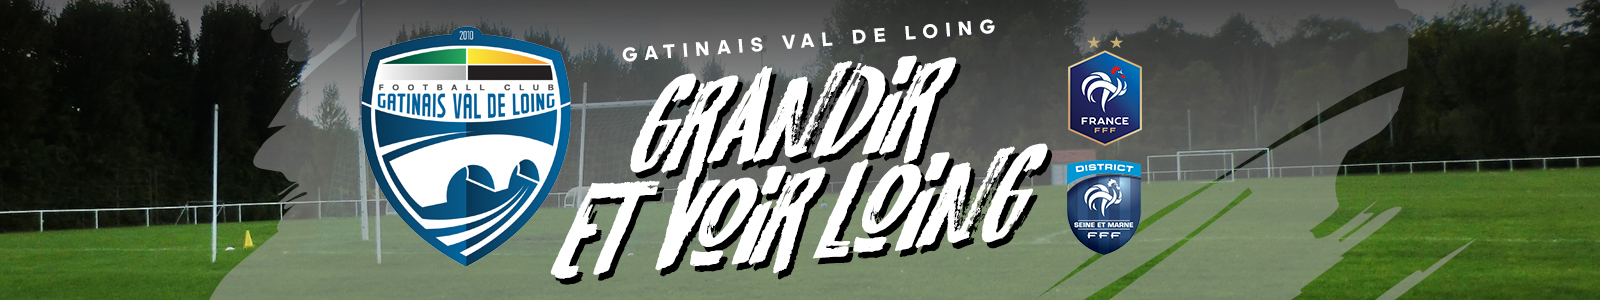 Site Internet officiel du club de football GATINAIS VAL DE LOING FC